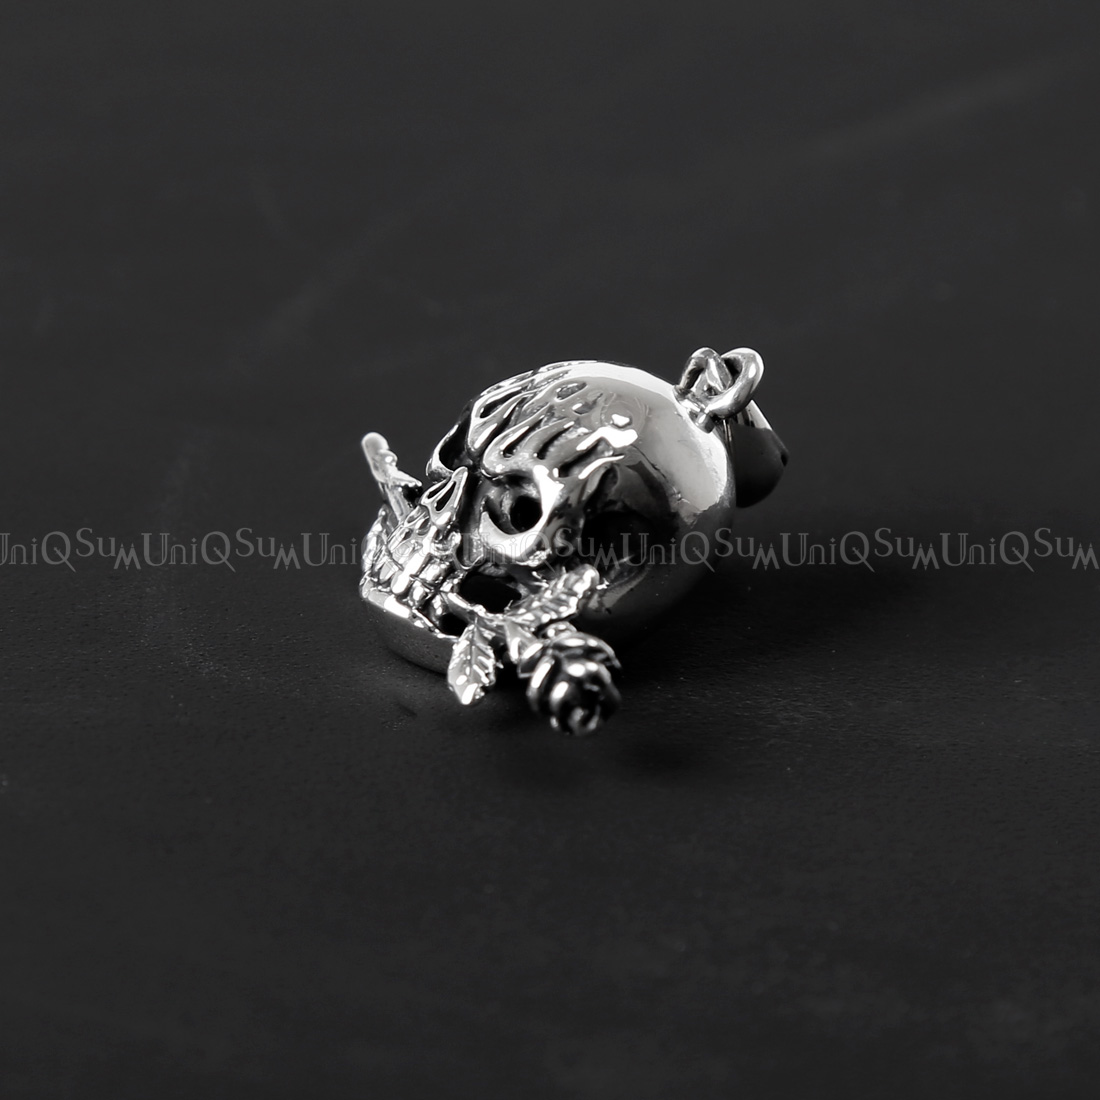 925 sterling silver tango rose skull pendant uniqsum rose skull pendant tango rose skull sterling silver mozeypictures Image collections